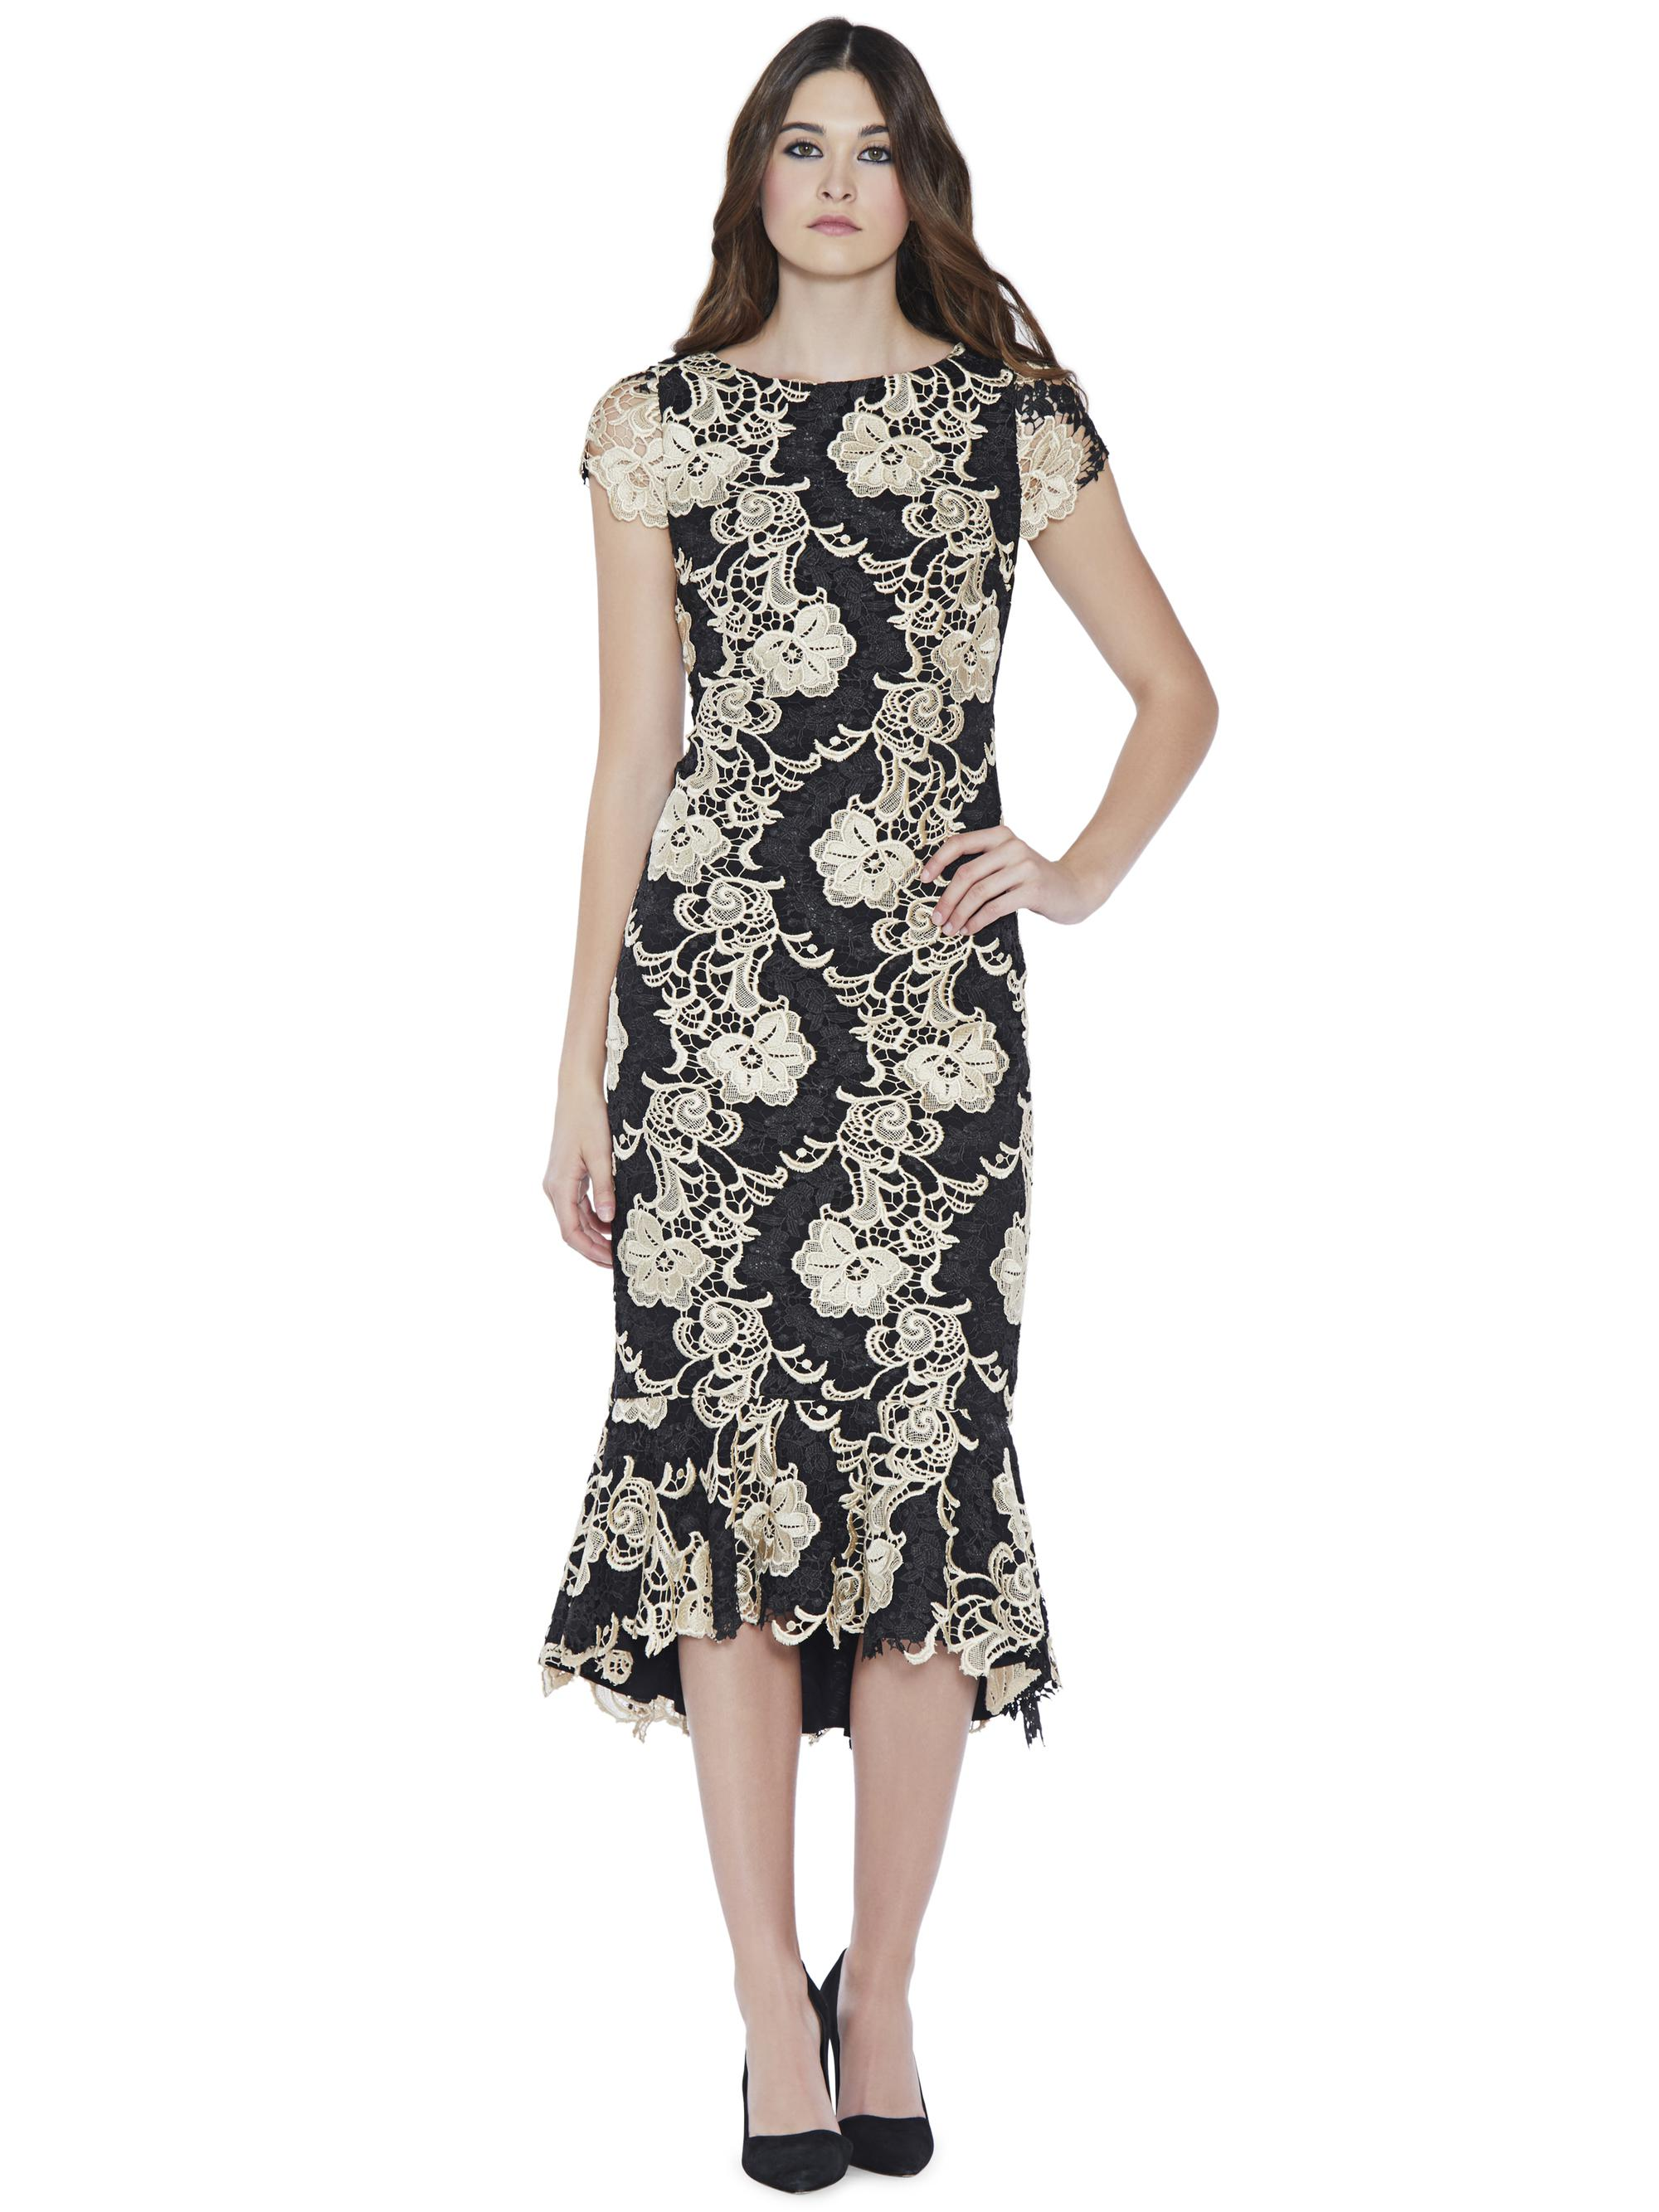 91cadf7e176 Alice + Olivia Cleora Midi Ruffle Fitted Dress in Black - Lyst